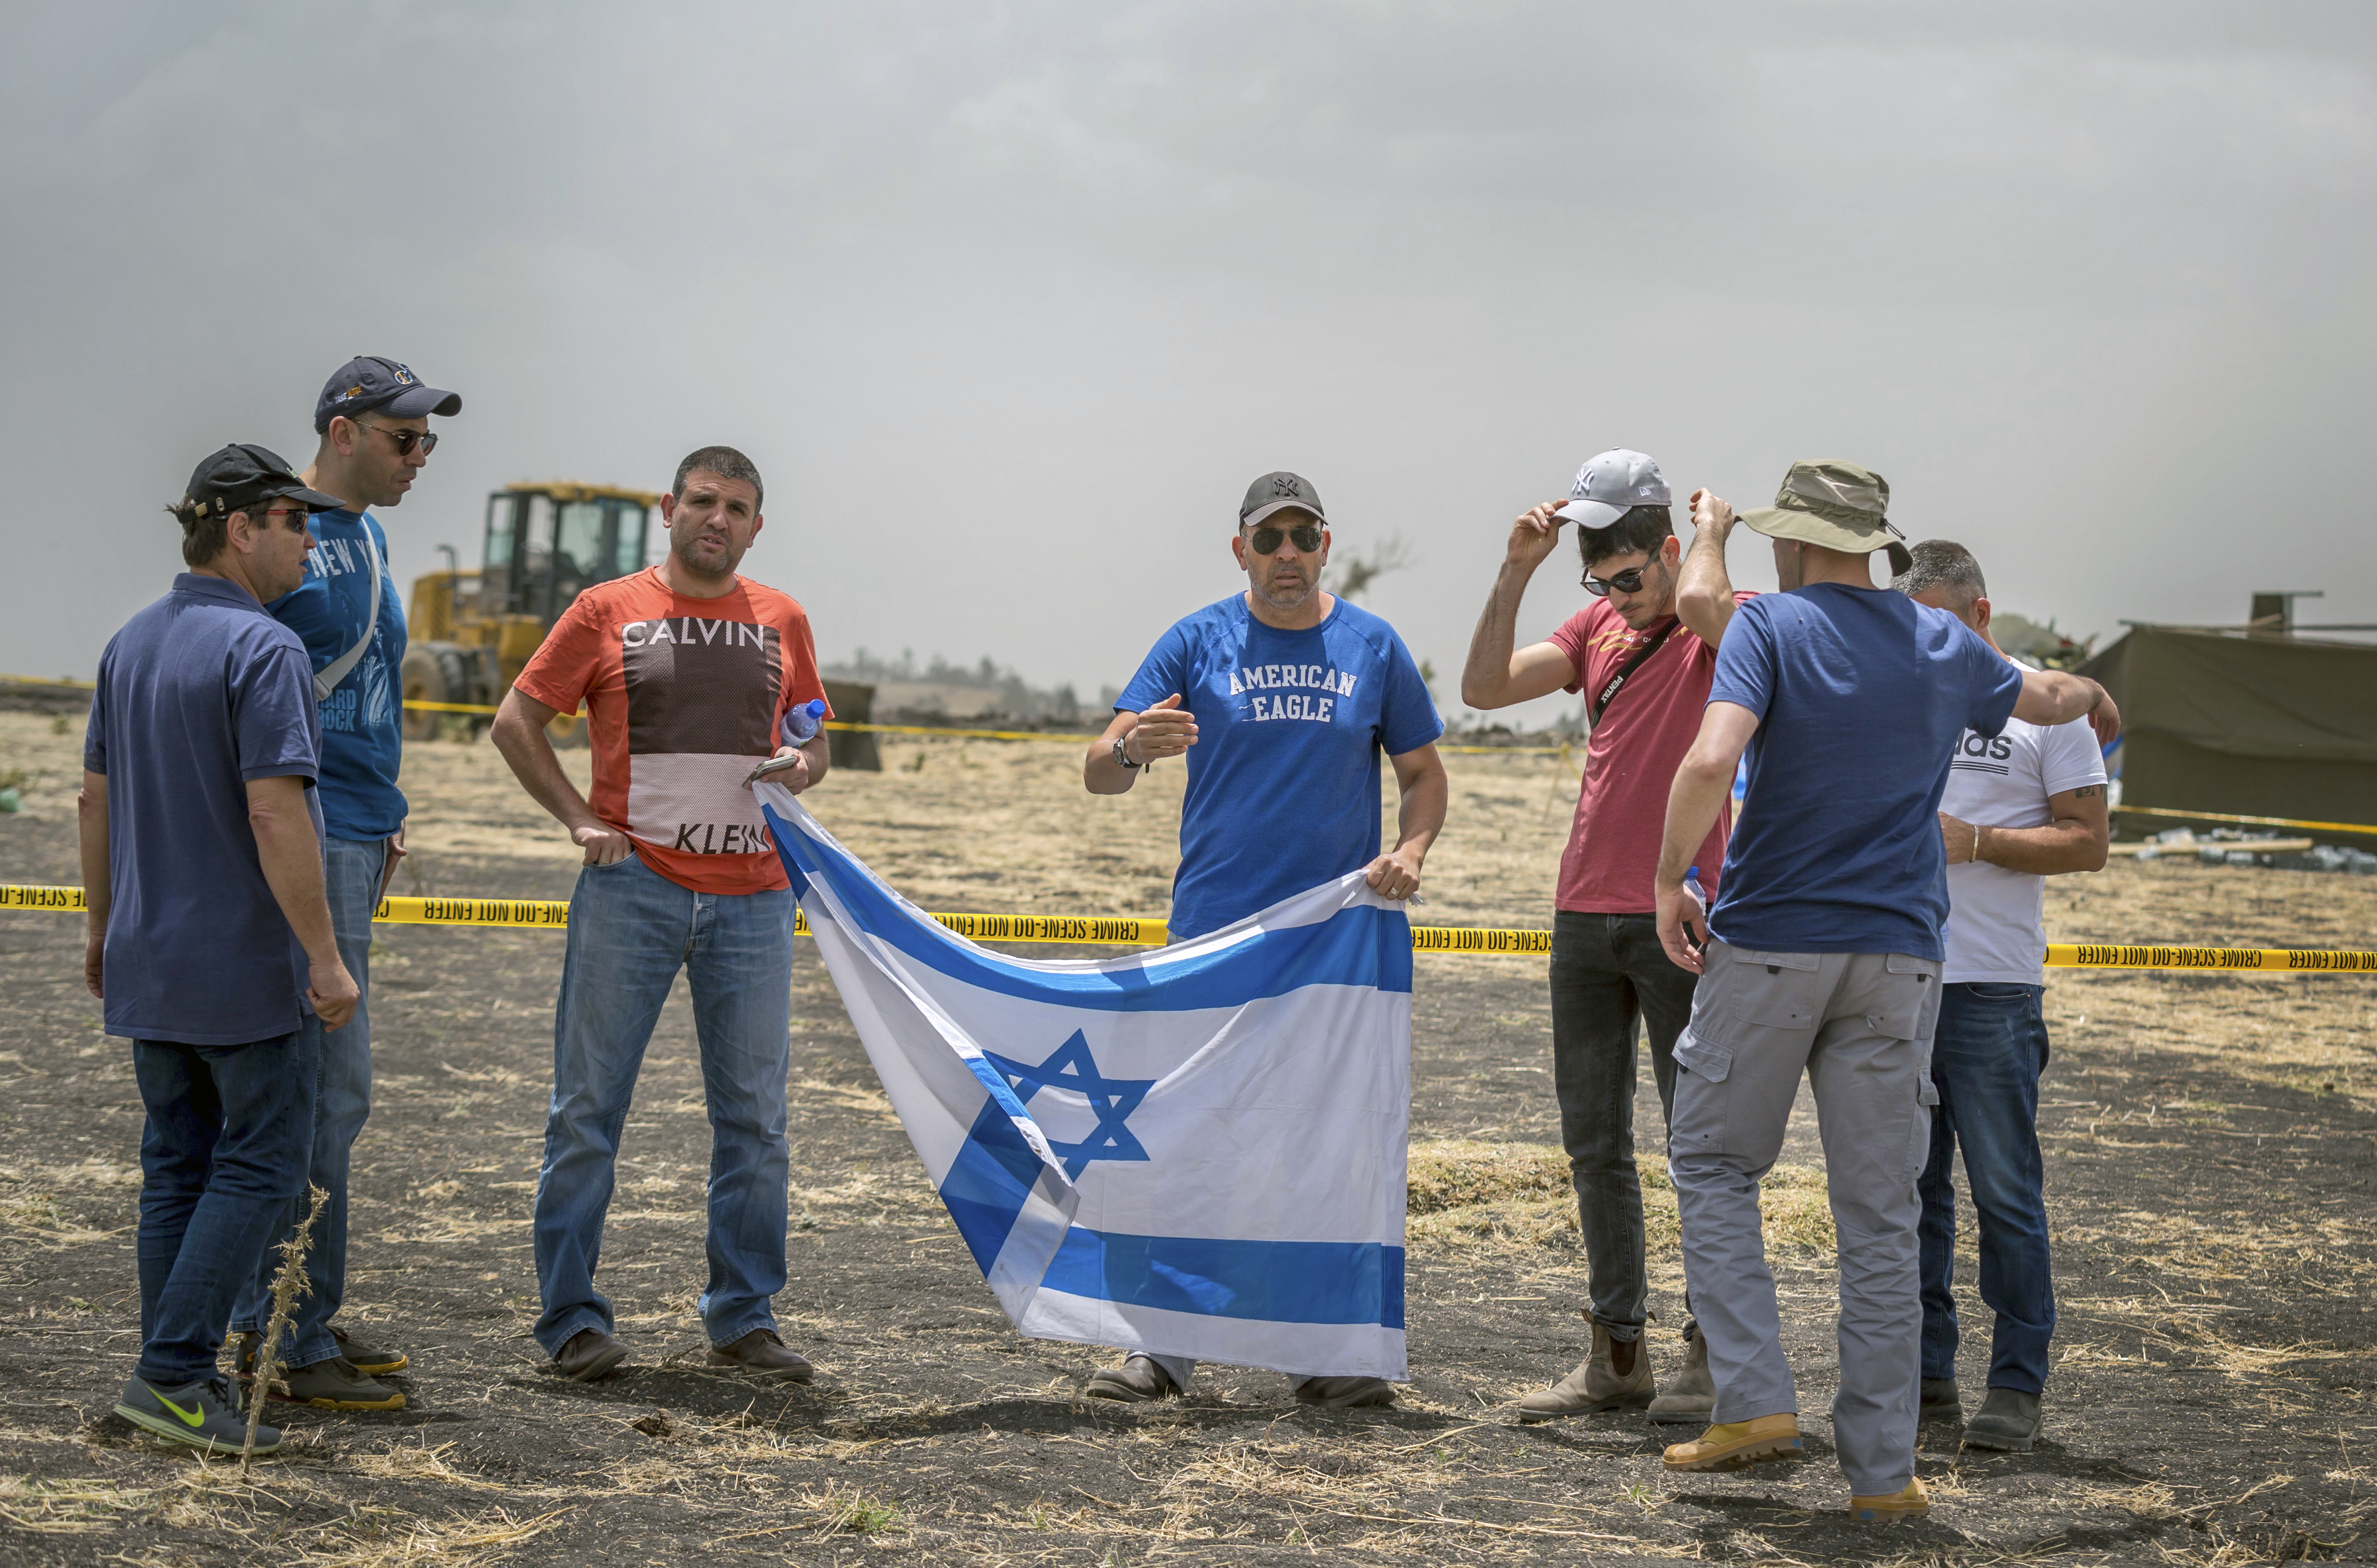 Israeli relatives hold their national flag at the scene where the Ethiopian Airlines Boeing 737 Max 8 crashed shortly after takeoff on Sunday killing all 157 on board, near Bishoftu, south-east of Addis Ababa, in Ethiopia Thursday, March 14, 2019. Flight recorders from the doomed Ethiopian Airlines flight arrived in France for analysis Thursday as frustrated relatives of the 157 people killed stormed out of a meeting with airline officials in Addis Ababa. (AP Photo/Mulugeta Ayene)